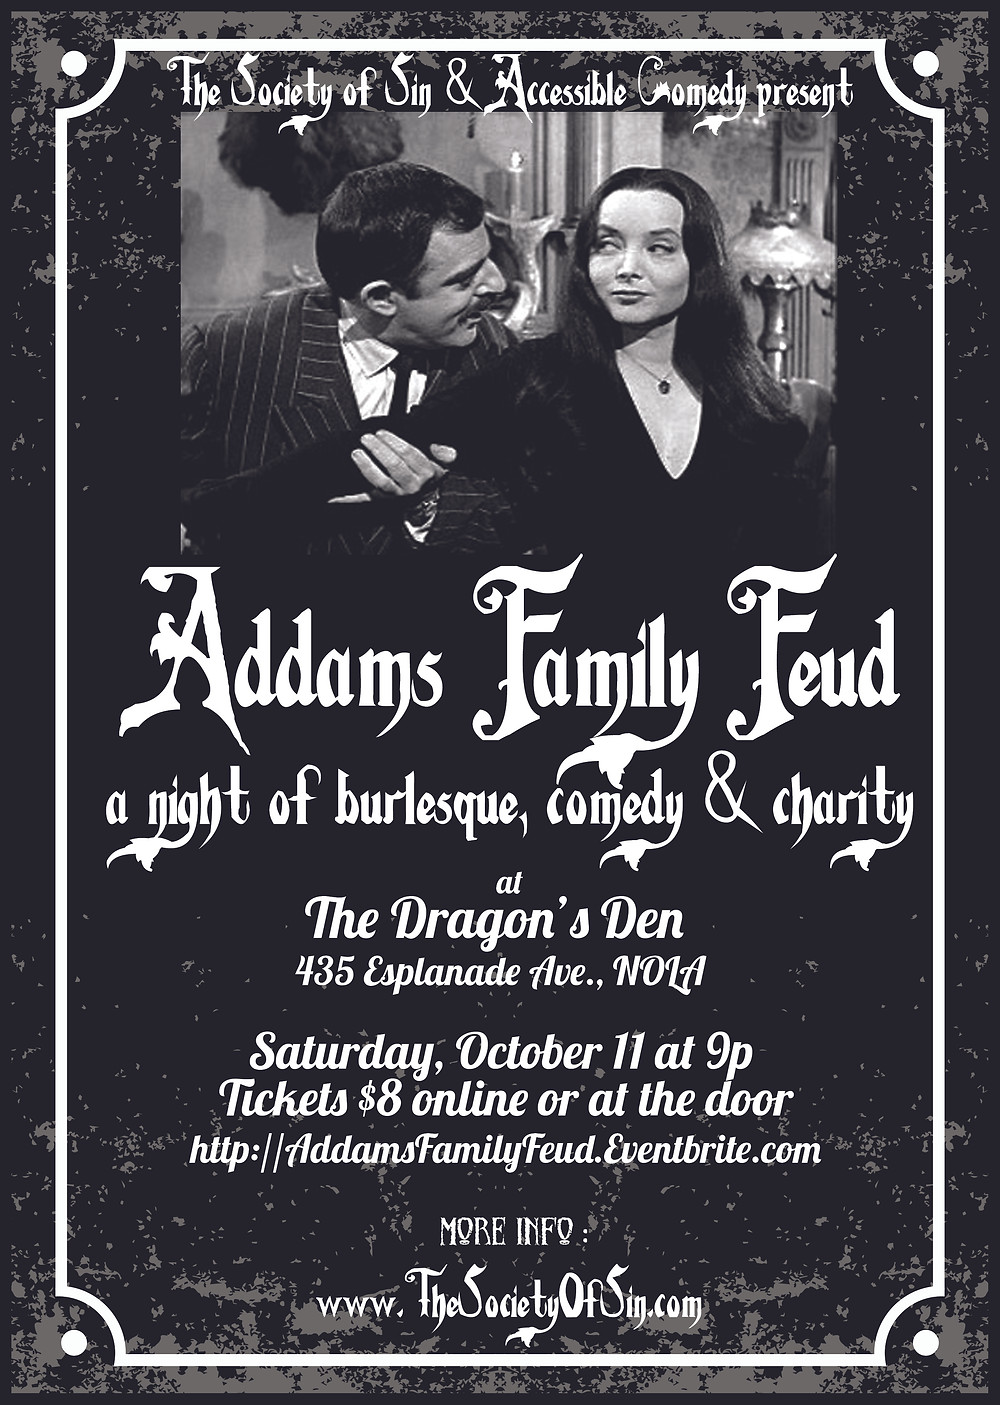 Addams Family Feud new orleans burlesque comedy variety the society of sin